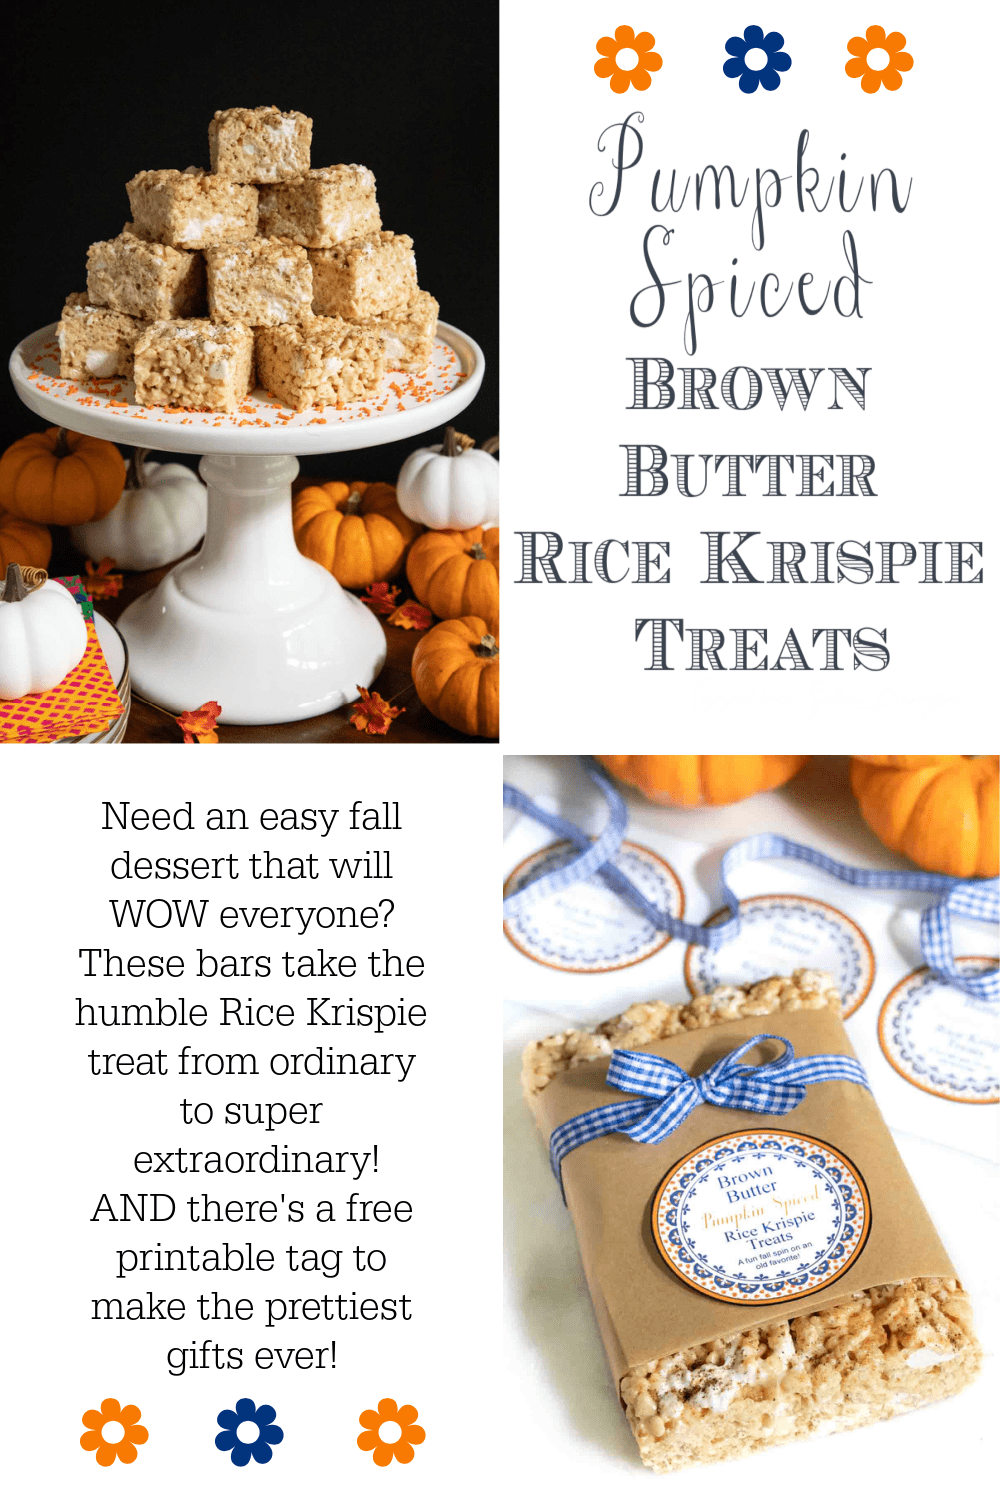 Pumpkin Spiced Brown Butter Rice Krispie Treats